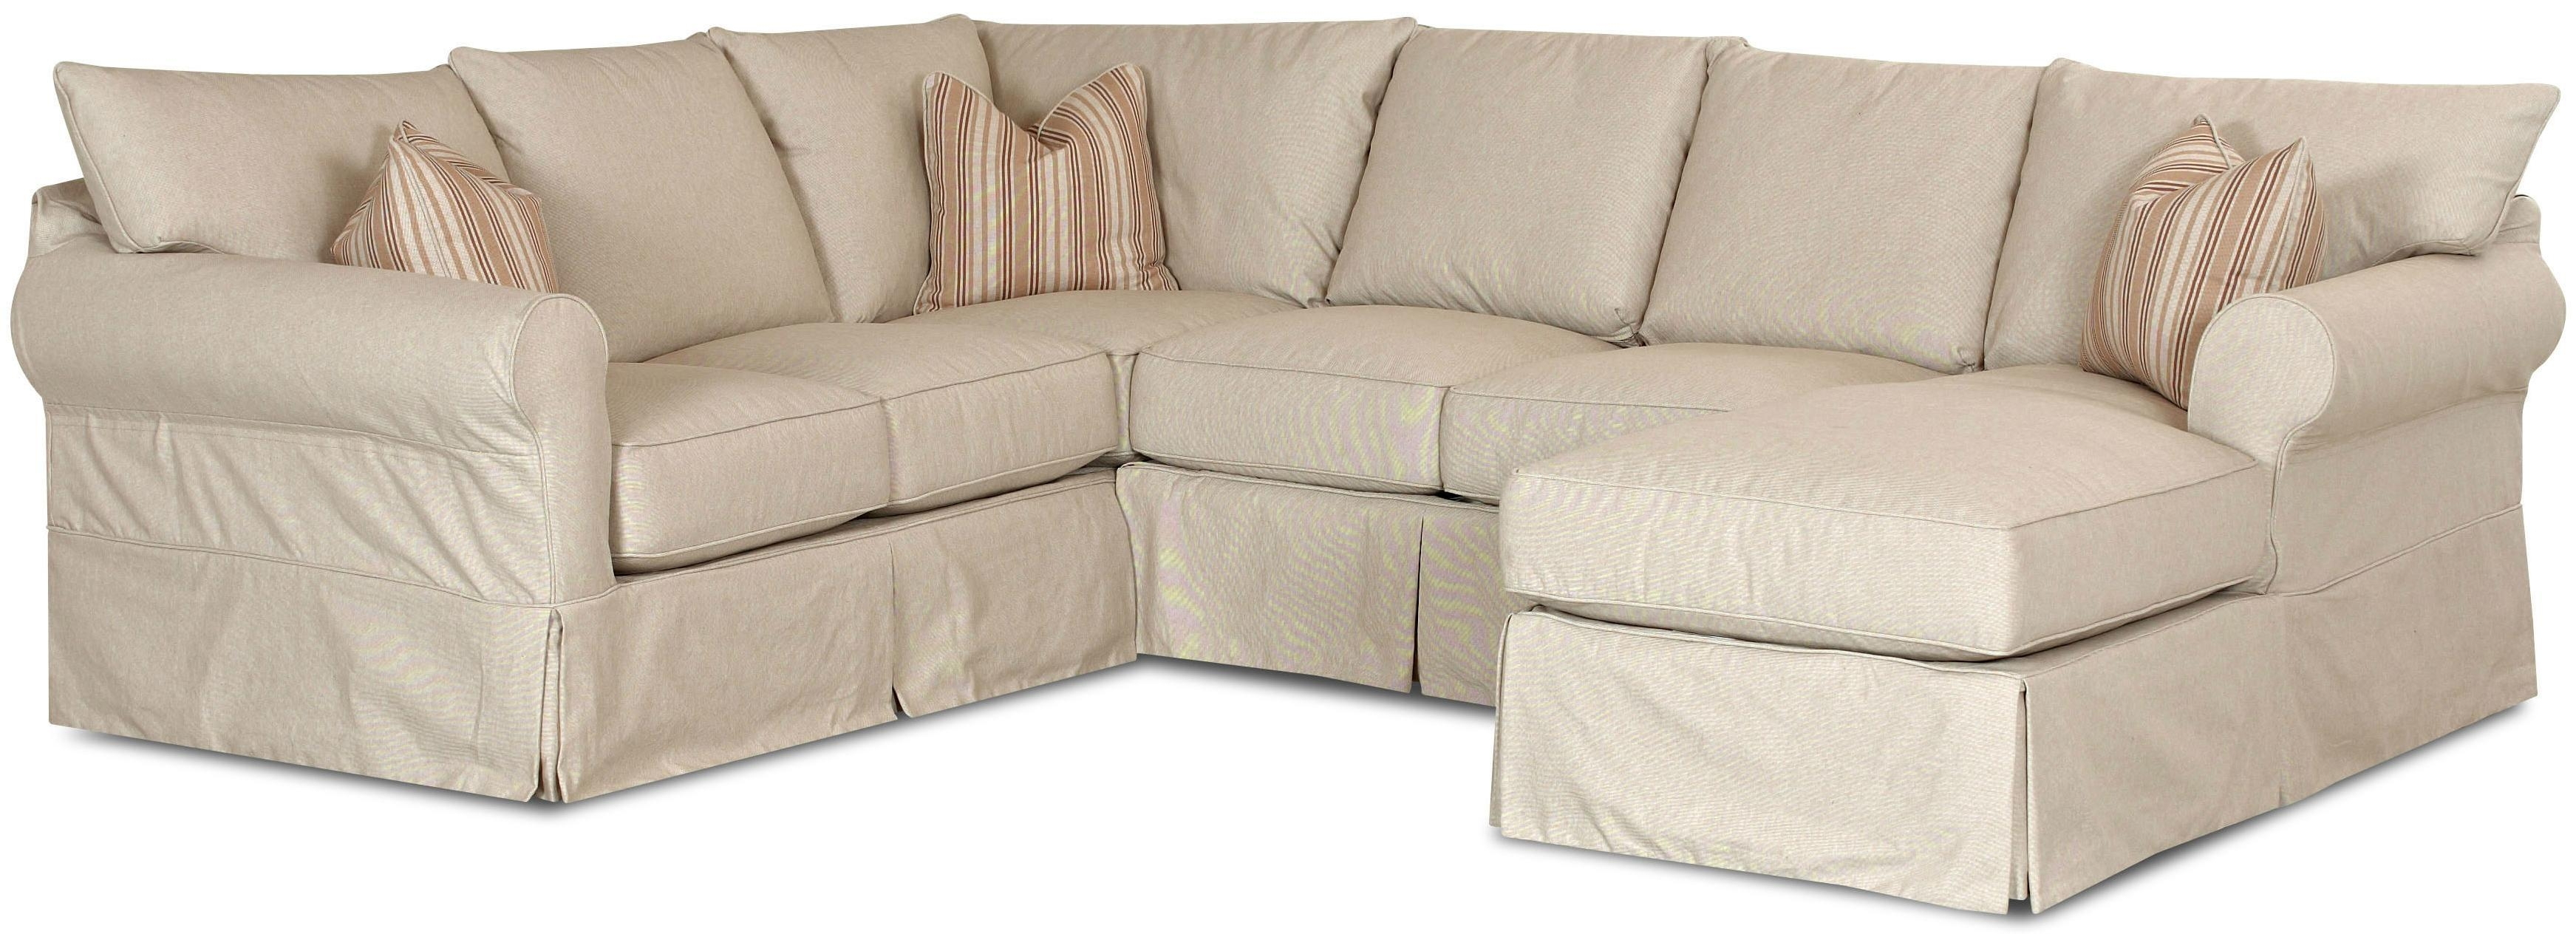 Furniture: Update Your Cozy Living Room With Cheap Sofa Covers Regarding 3 Piece Sofa Covers (View 14 of 20)